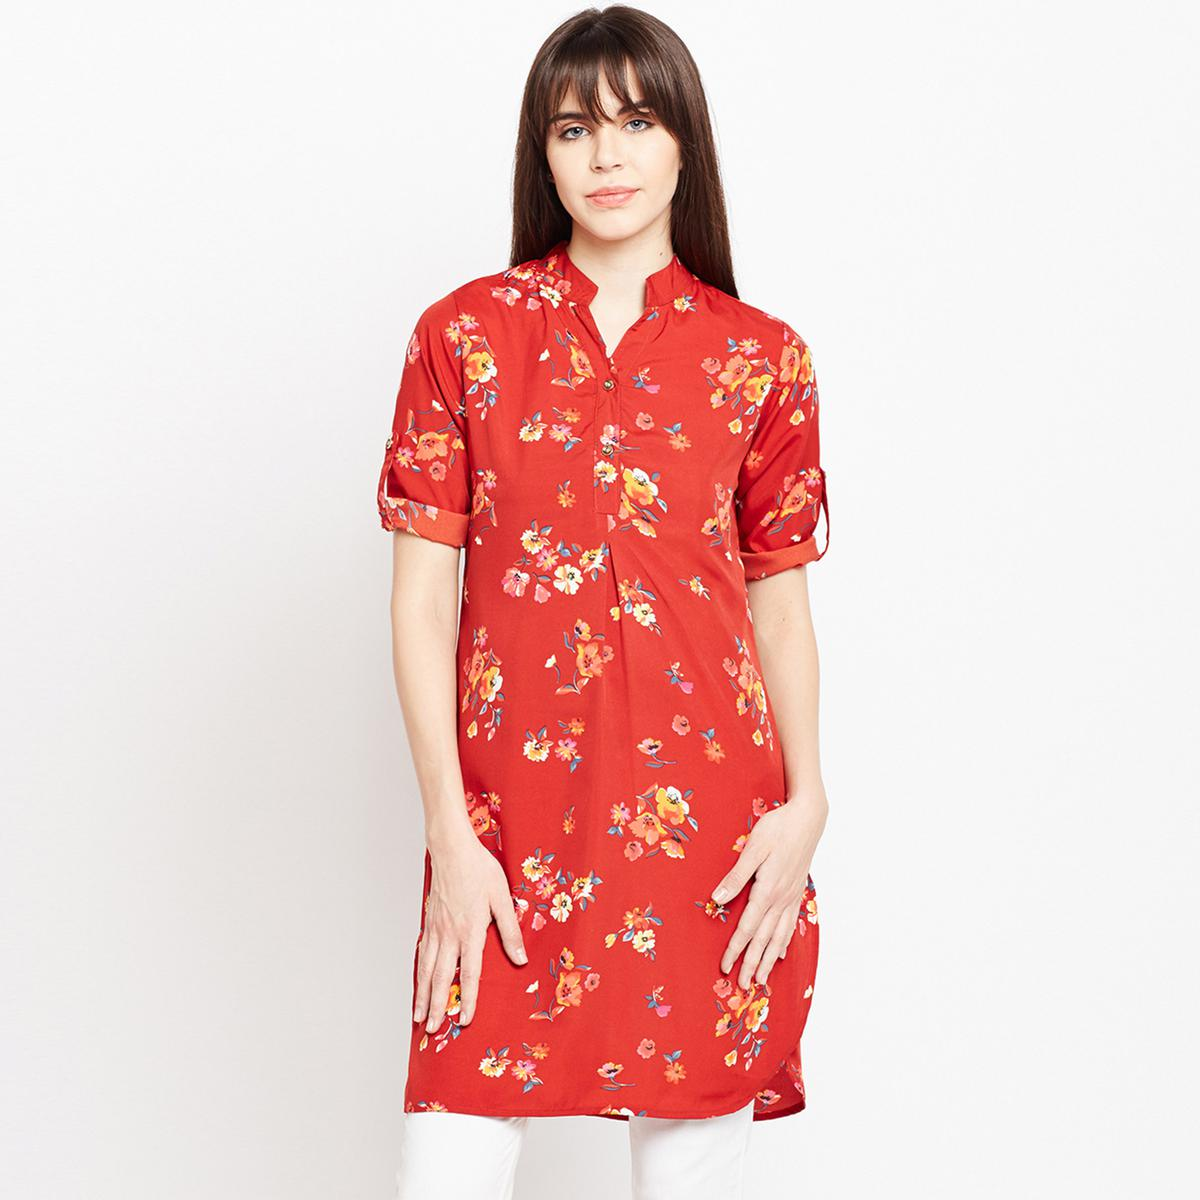 Ruhaan's Womens Red Floral Printed Crepe Tunic